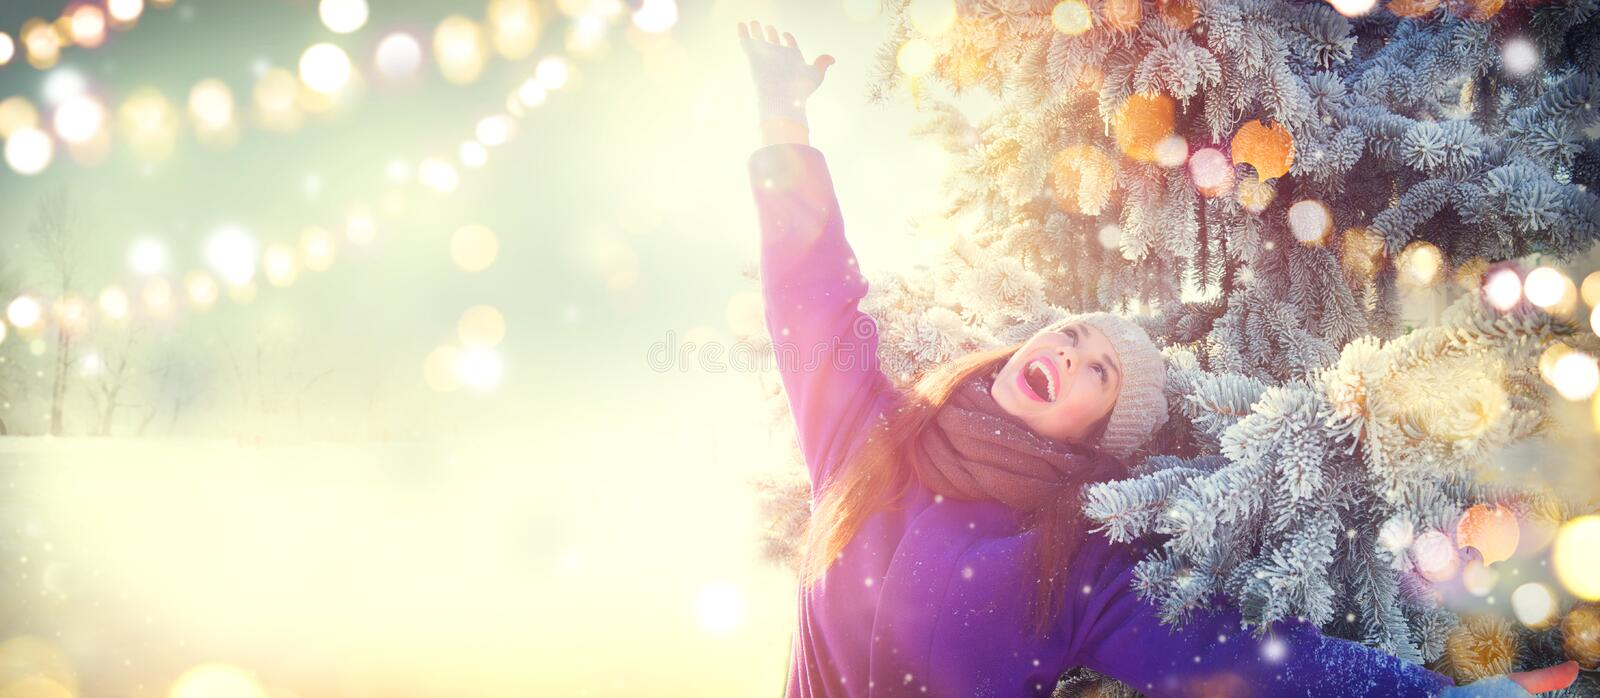 Christmas scene. Winter joyful beauty girl having fun outdoors in winter park under decorated Christmas tree royalty free stock photography